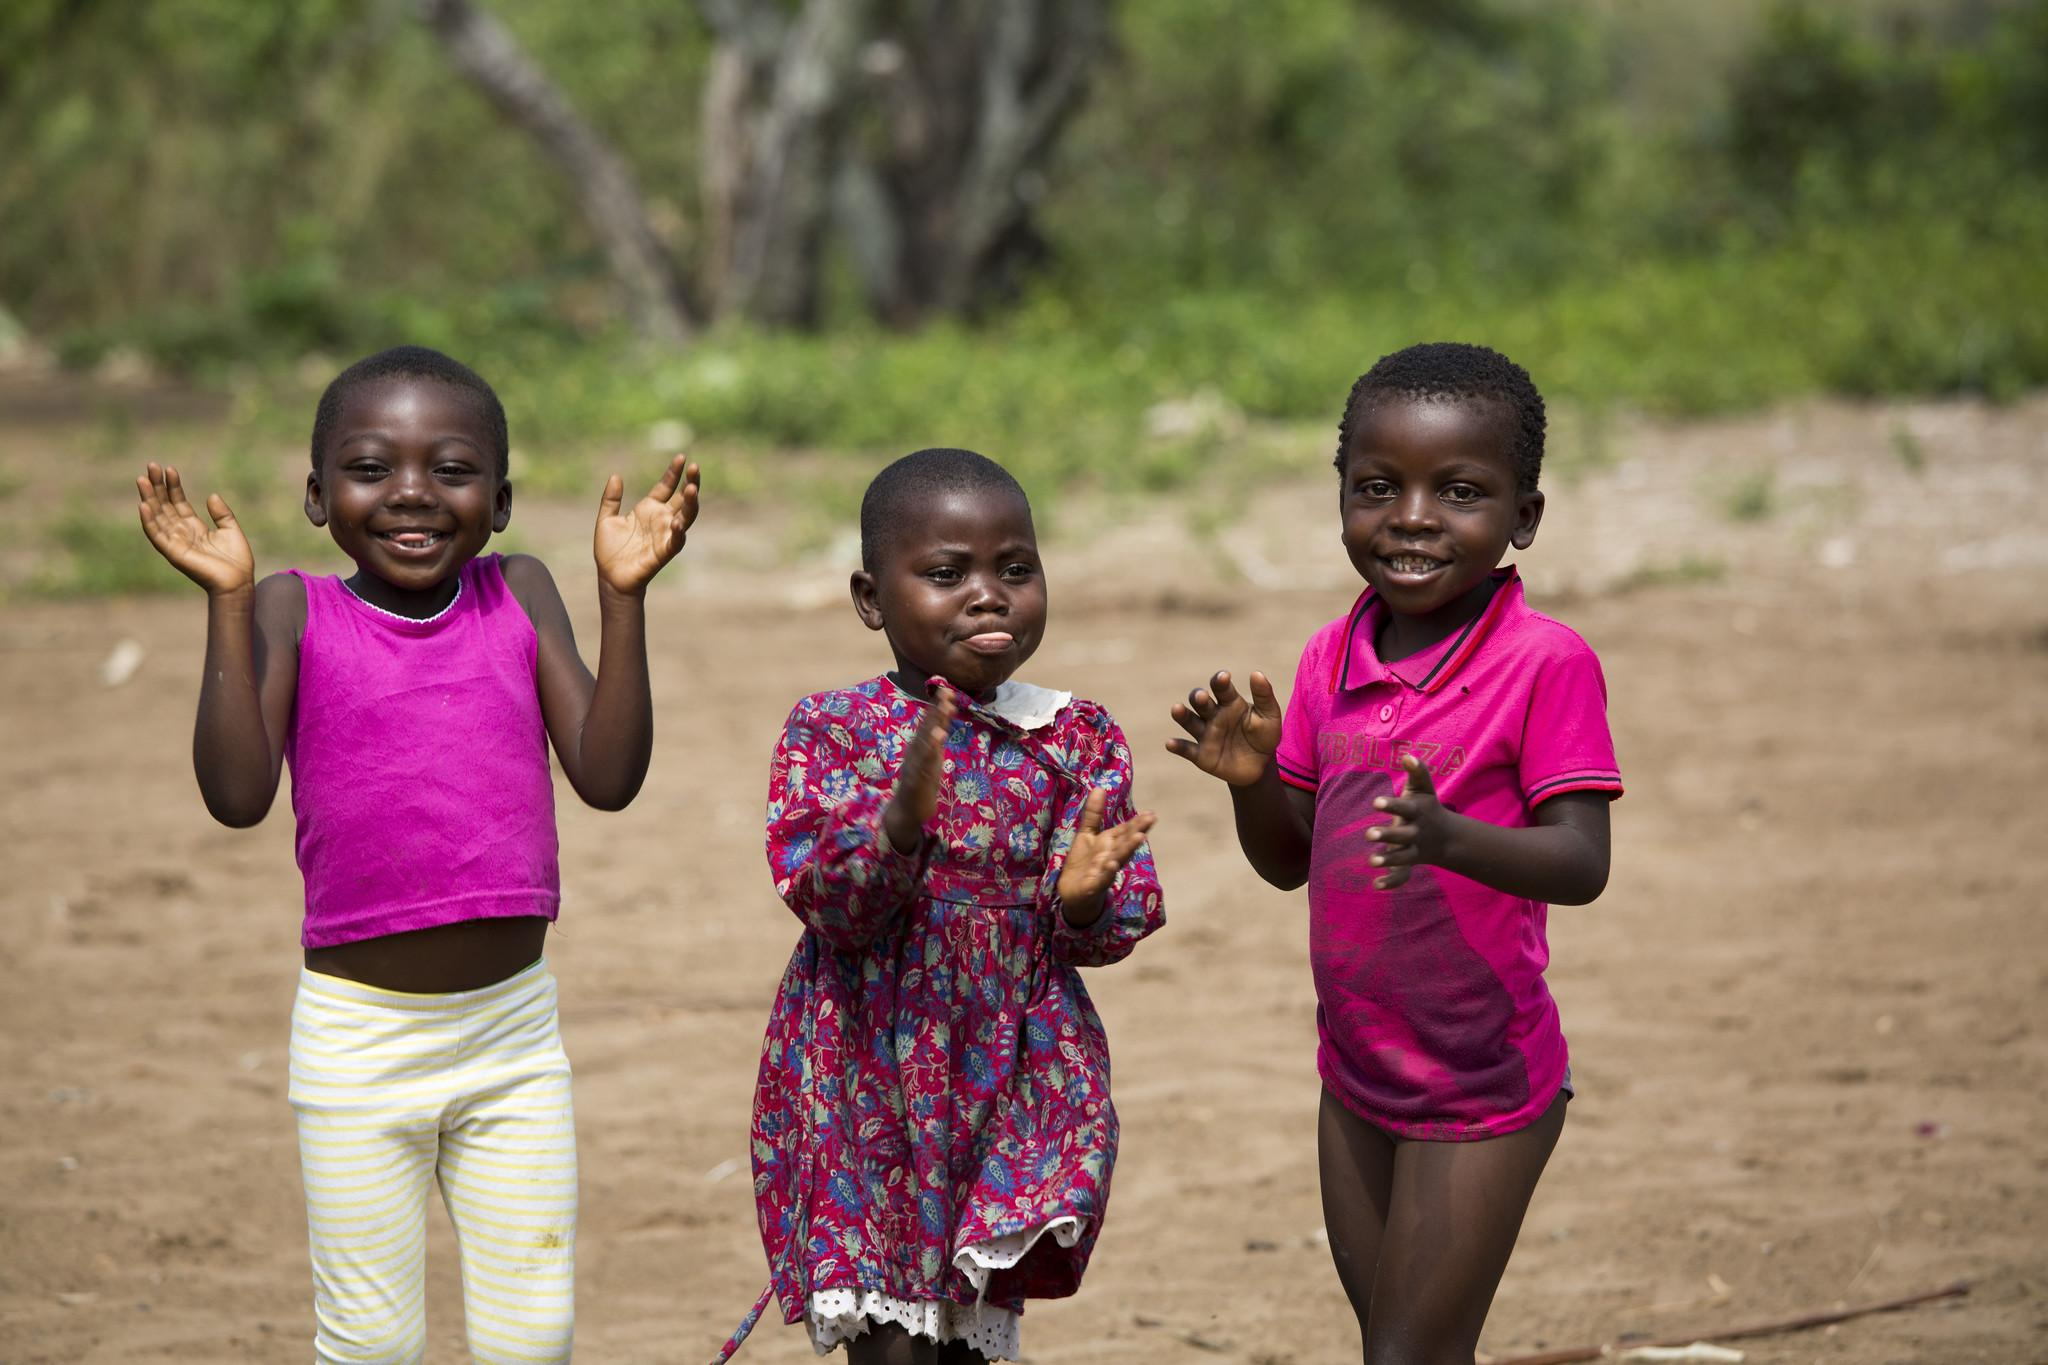 DRC children enjoying themselves